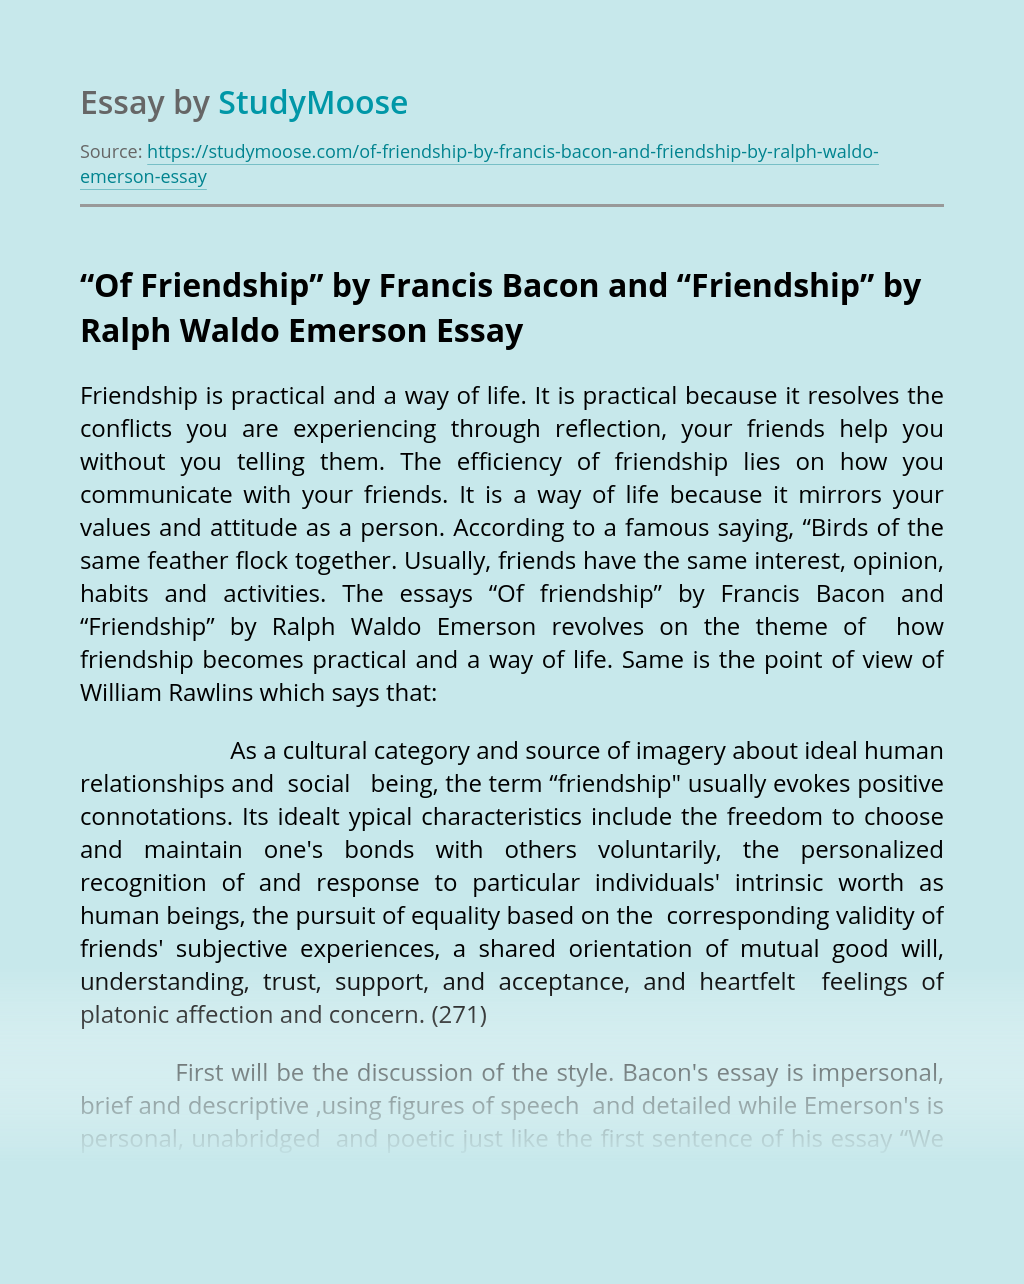 """""""Of Friendship"""" by Francis Bacon and """"Friendship"""" by Ralph Waldo Emerson"""